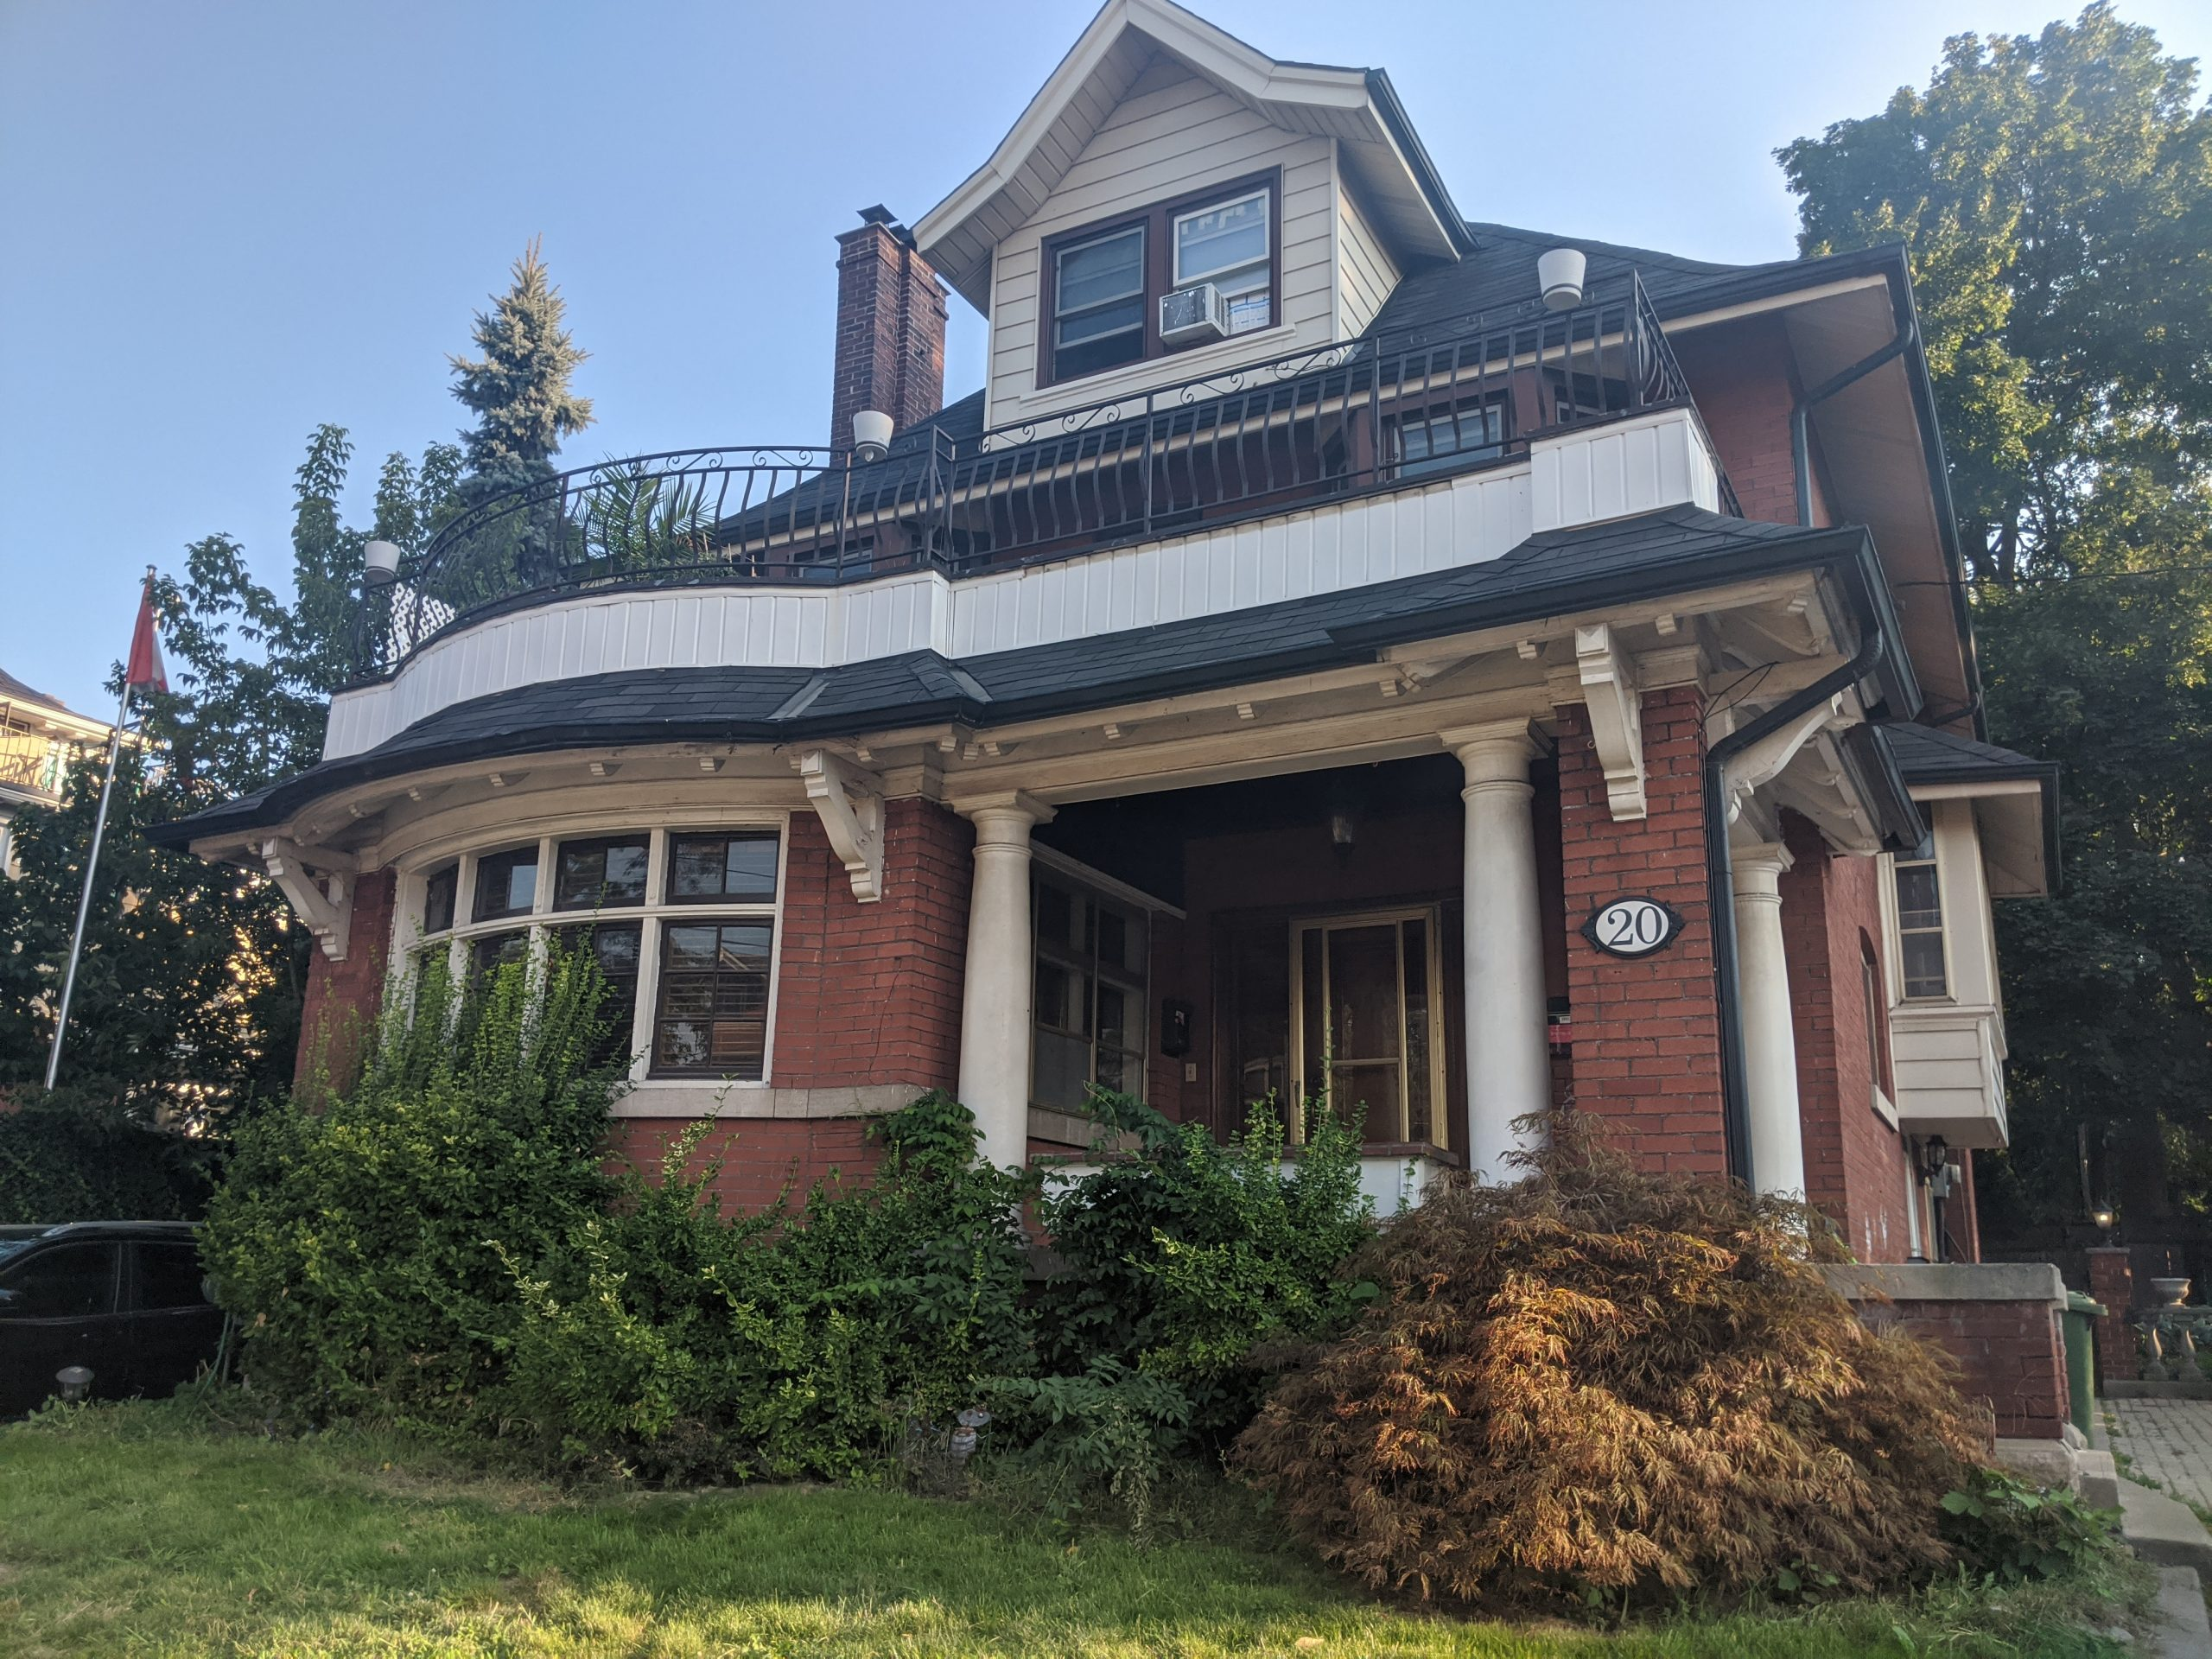 Front of this century home has tons of beauty and character